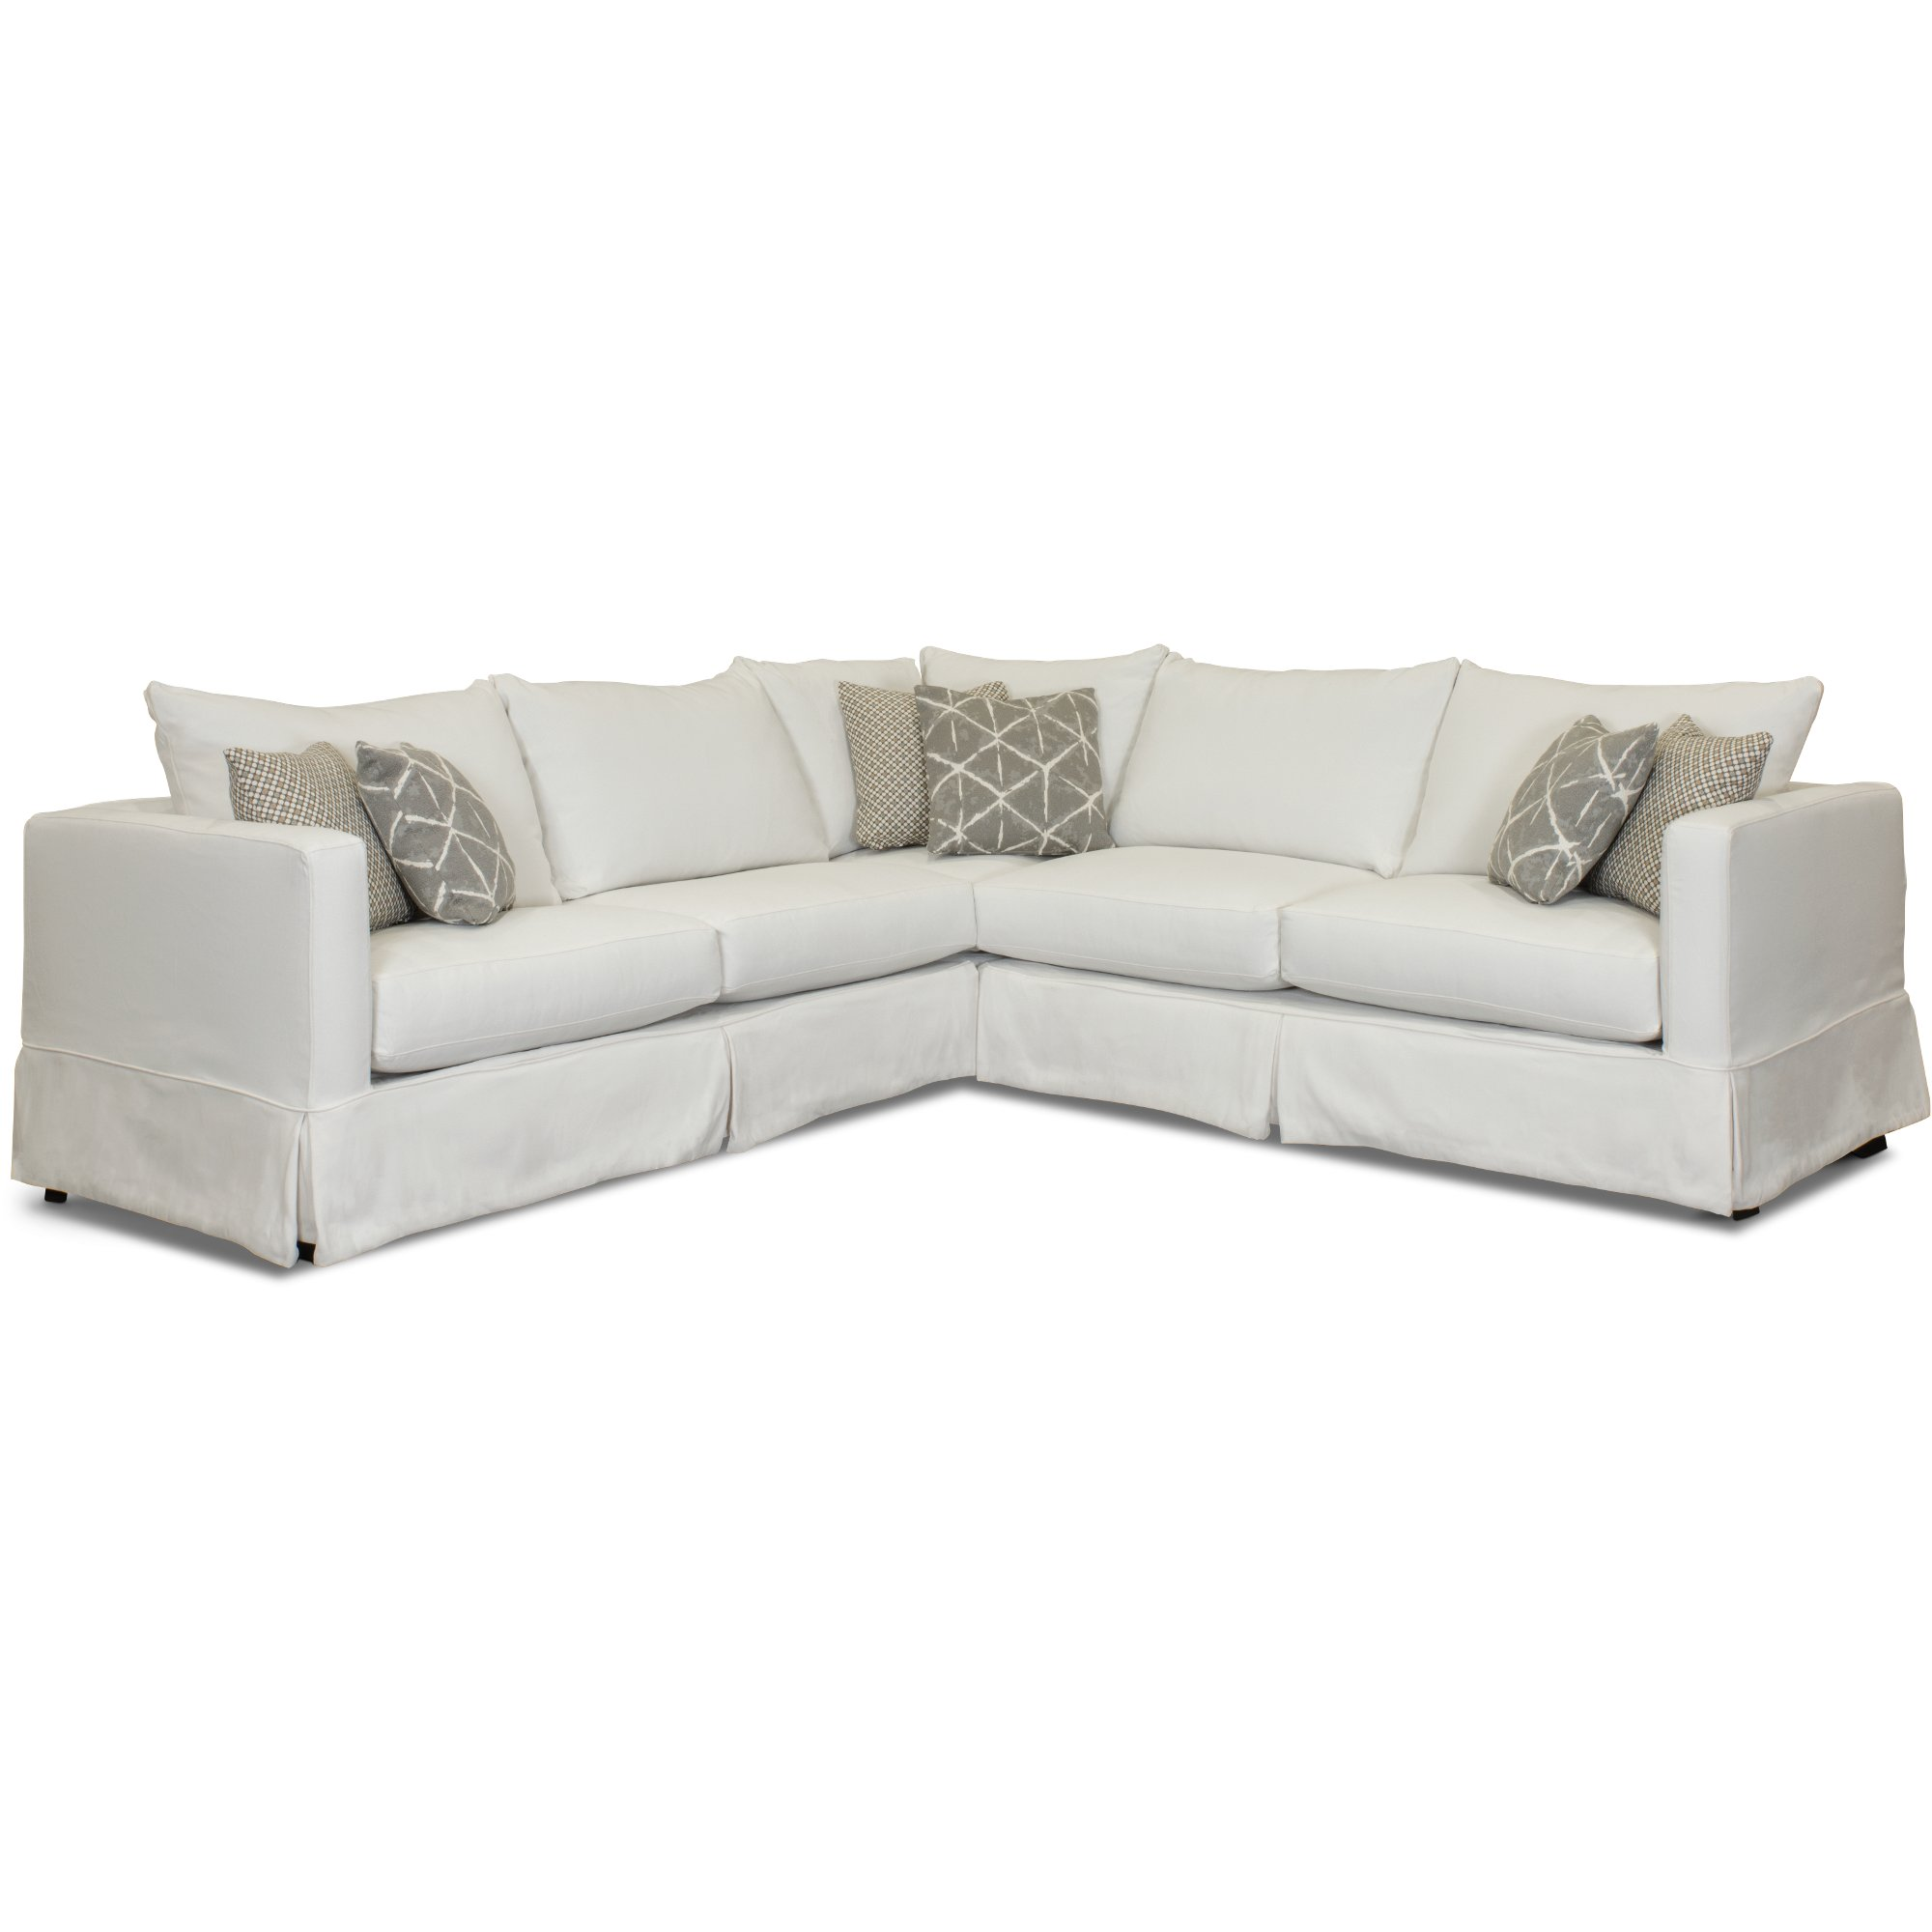 Casual Contemporary White 3 Piece Sectional Sofa   Barrage | RC Willey  Furniture Store